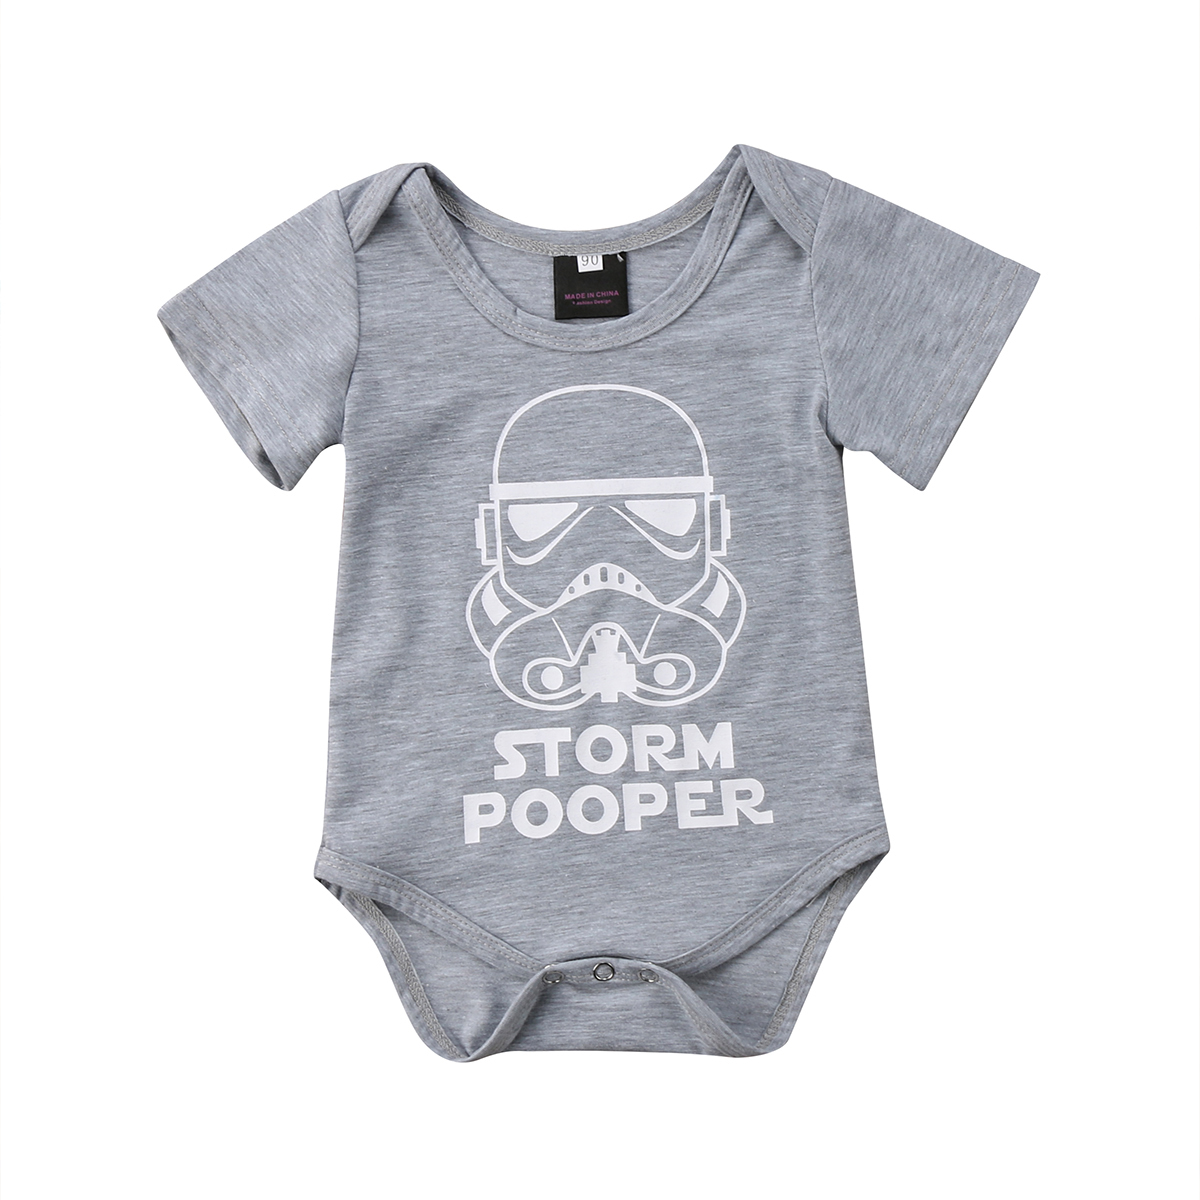 Infant Newborn Baby Boy Girl Cartoon Funny Short Sleeve   Romper   Clothes Outfit Baby Clothing